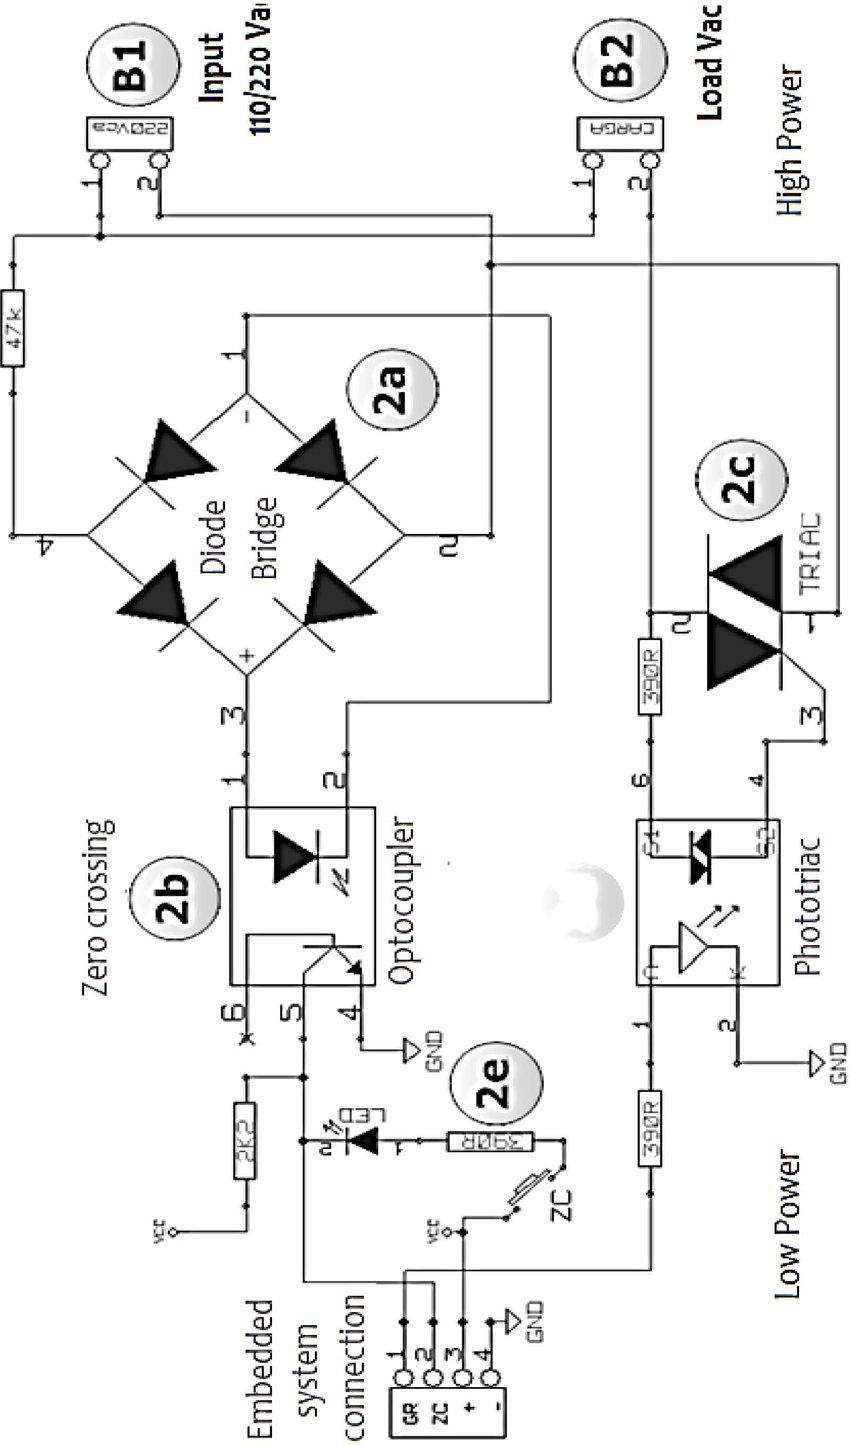 medium resolution of schematic of the developed ac voltage control circuit the zero crossing detection 9 of the grid sinusoidal voltage is performed using a photo coupler